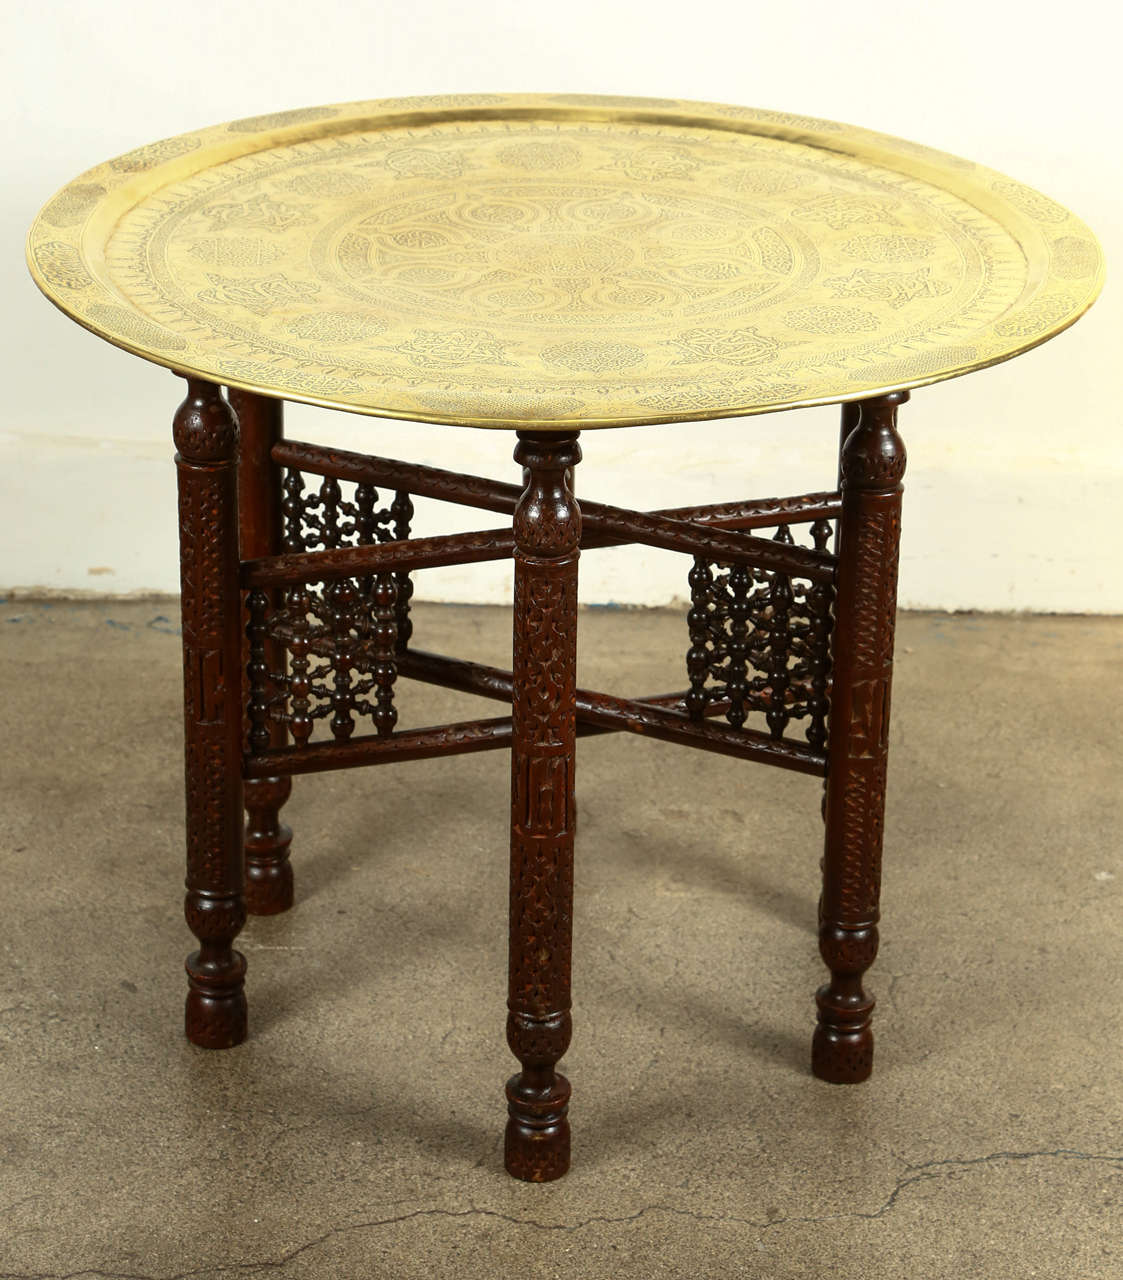 Antique Arabic Brass Tray Side Table at 1stdibs